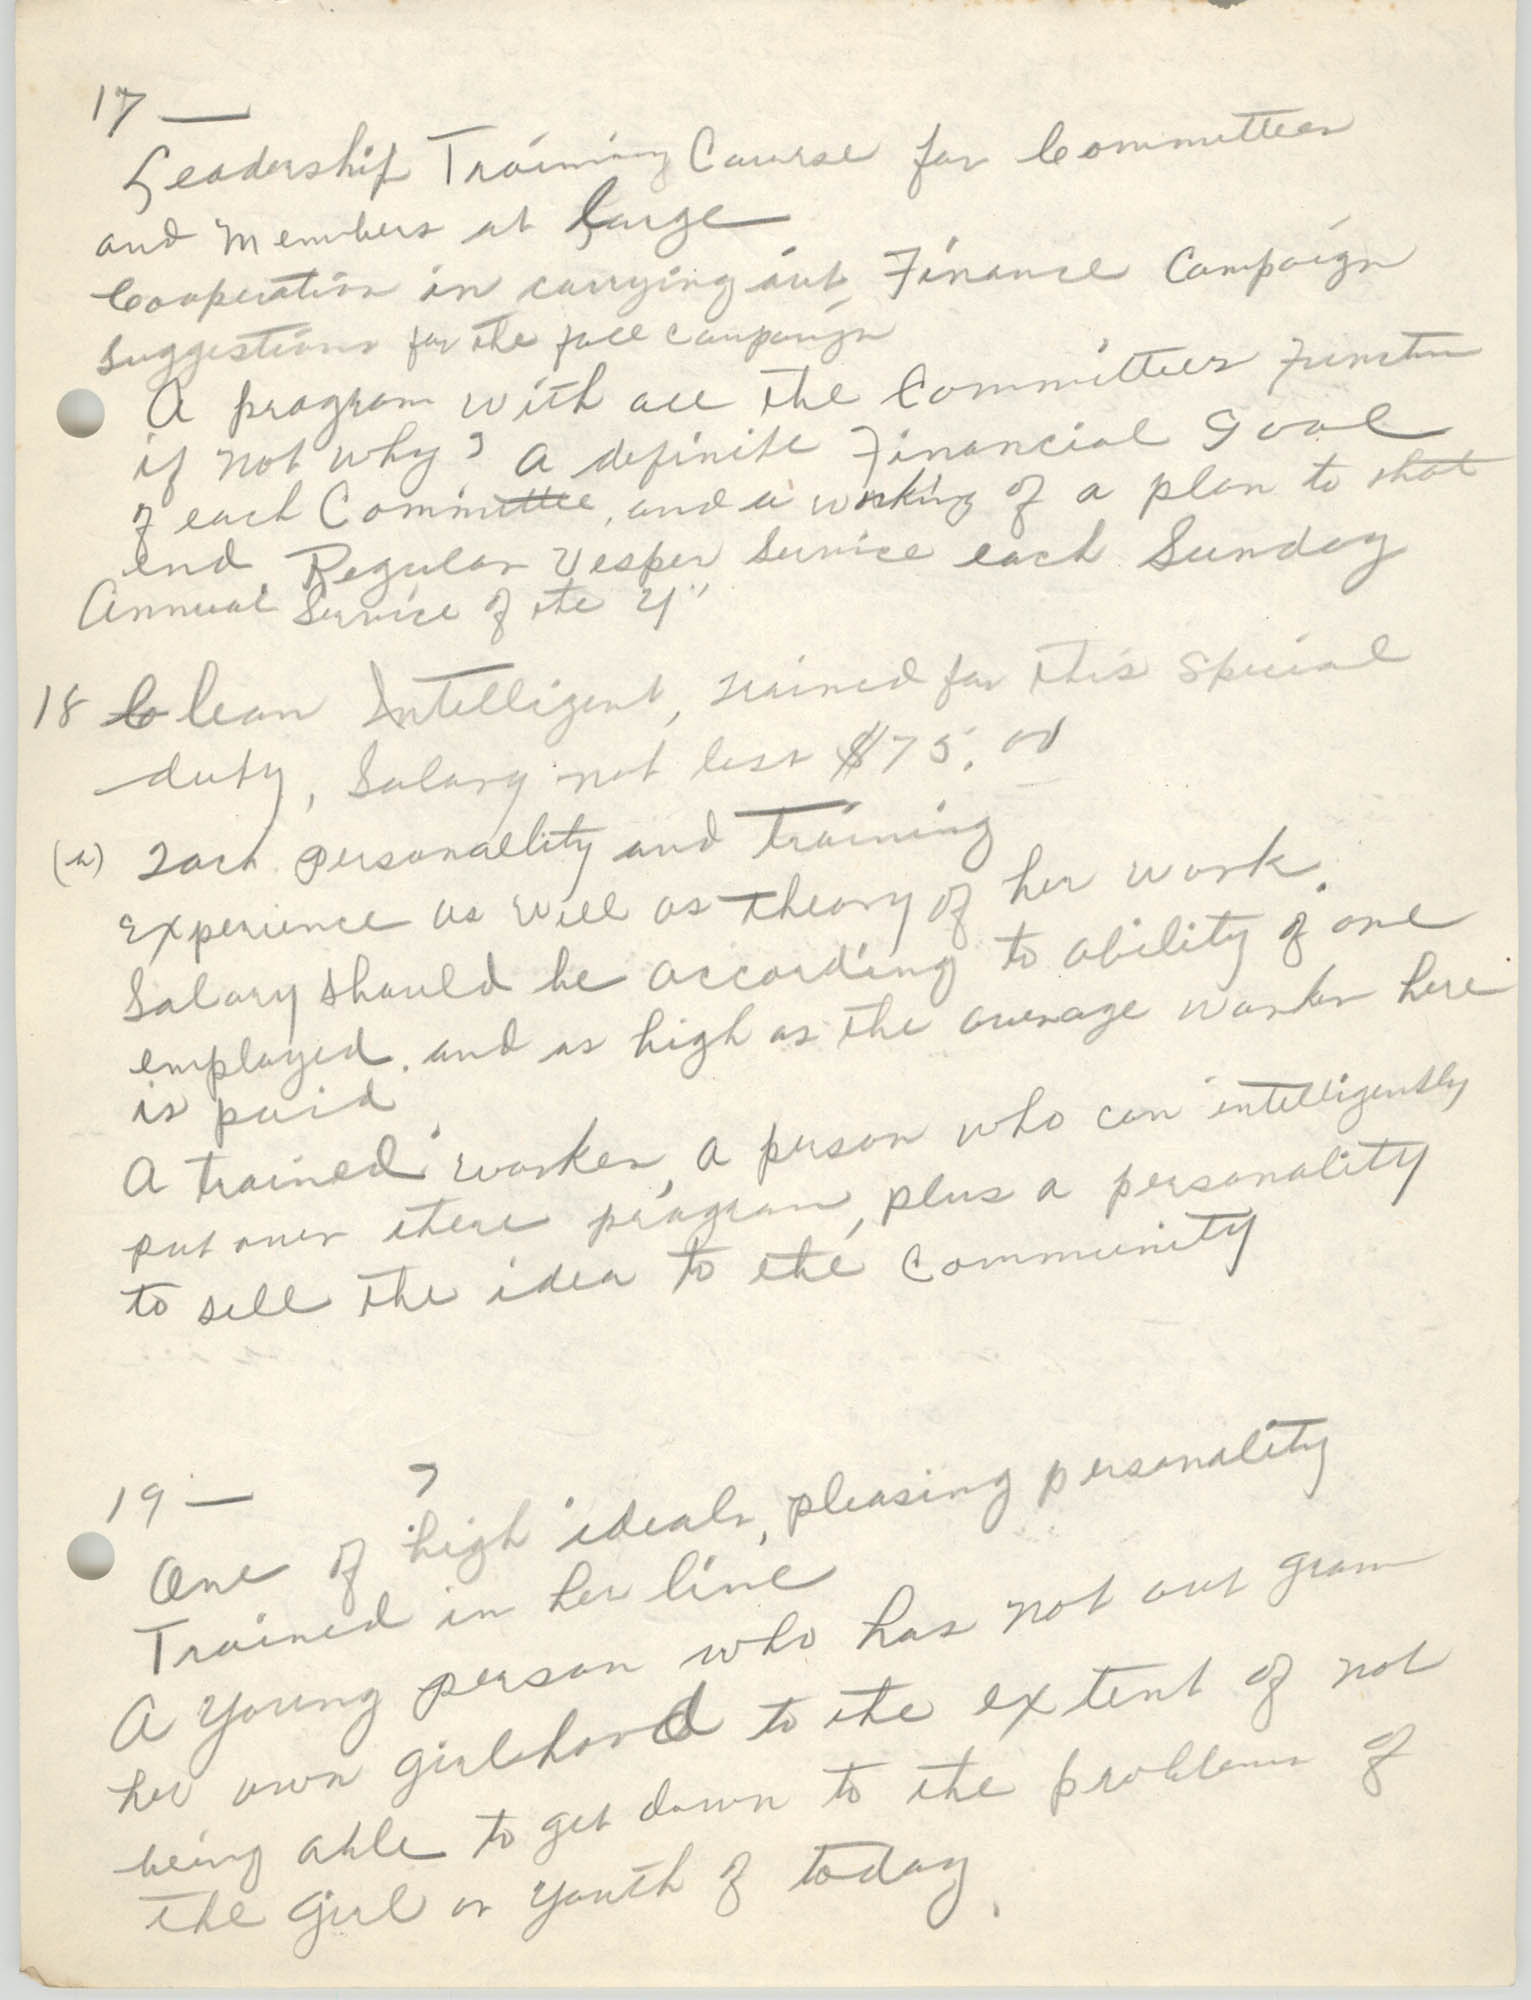 Coming Street Y.W.C.A., Completed Questionnaire Number 12, Page 7